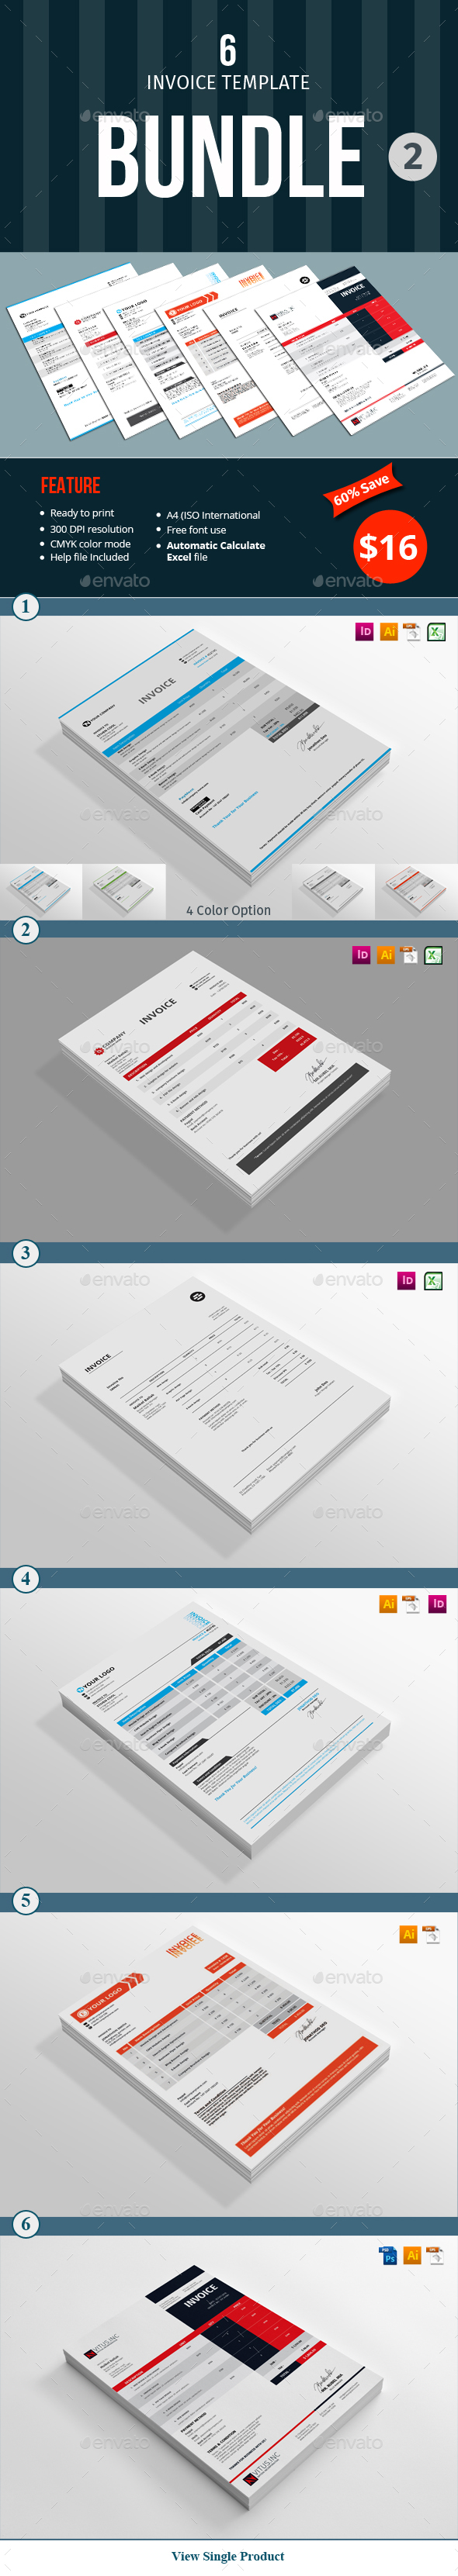 Invoice Template Bundle - 2 - Proposals & Invoices Stationery